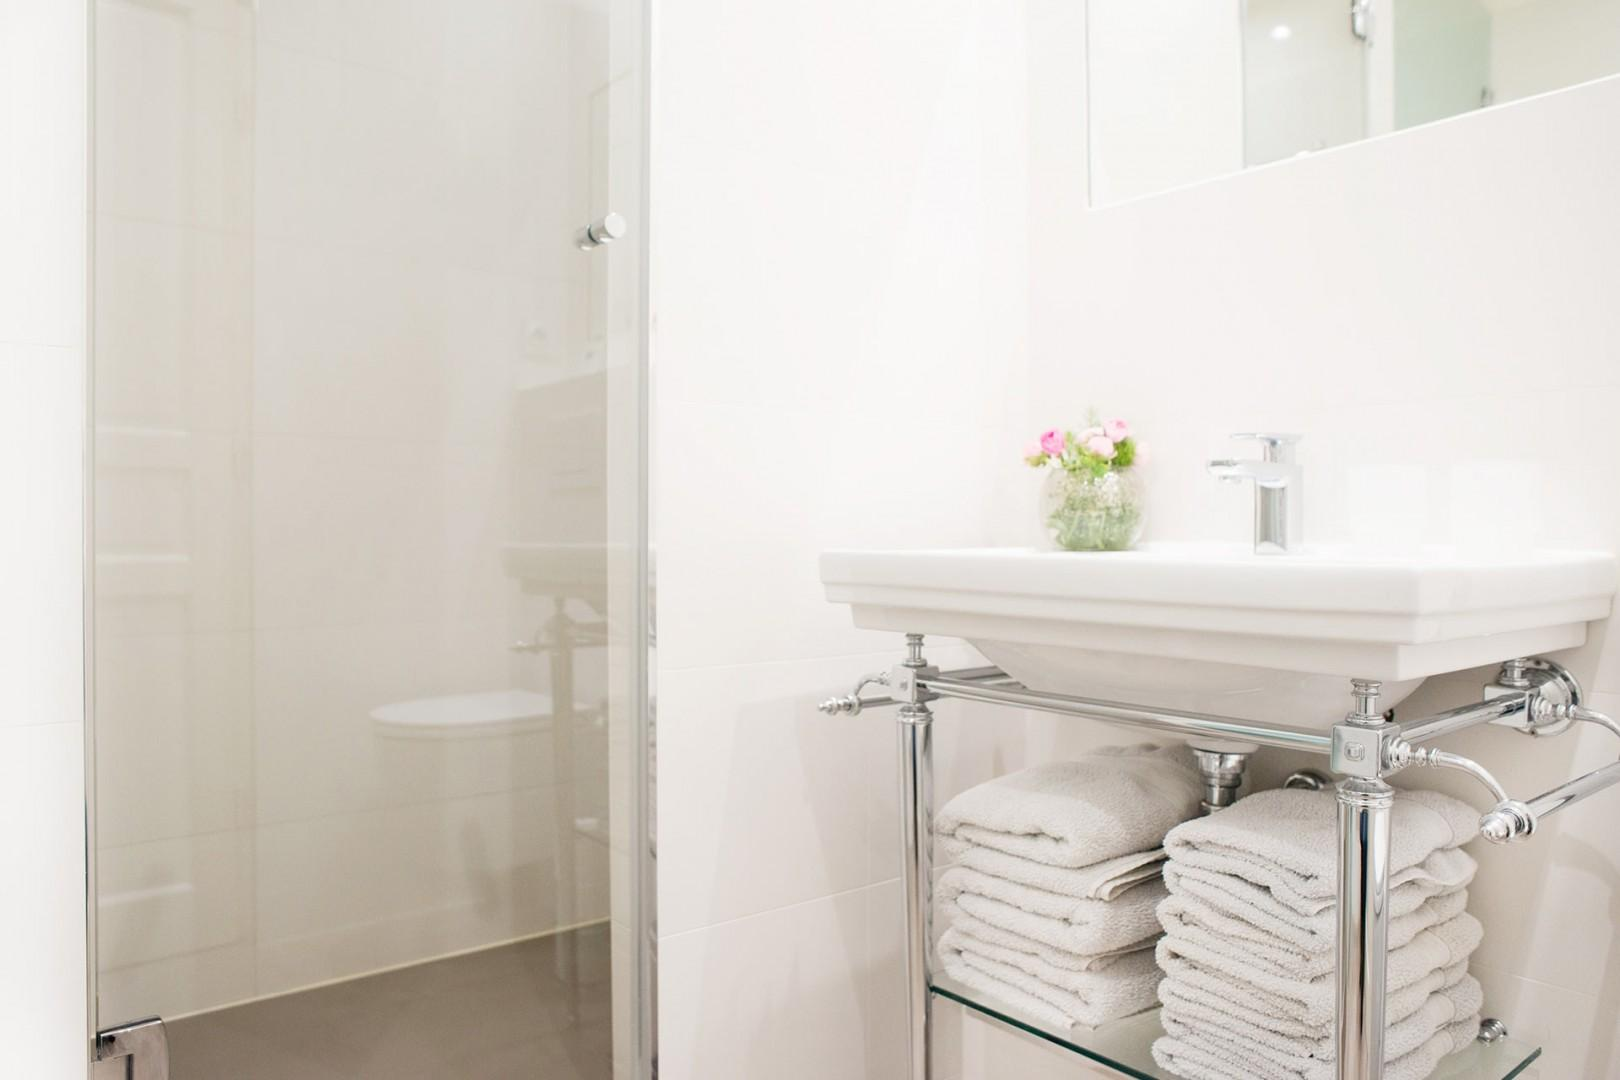 Start your day in the pristine bathroom 1.